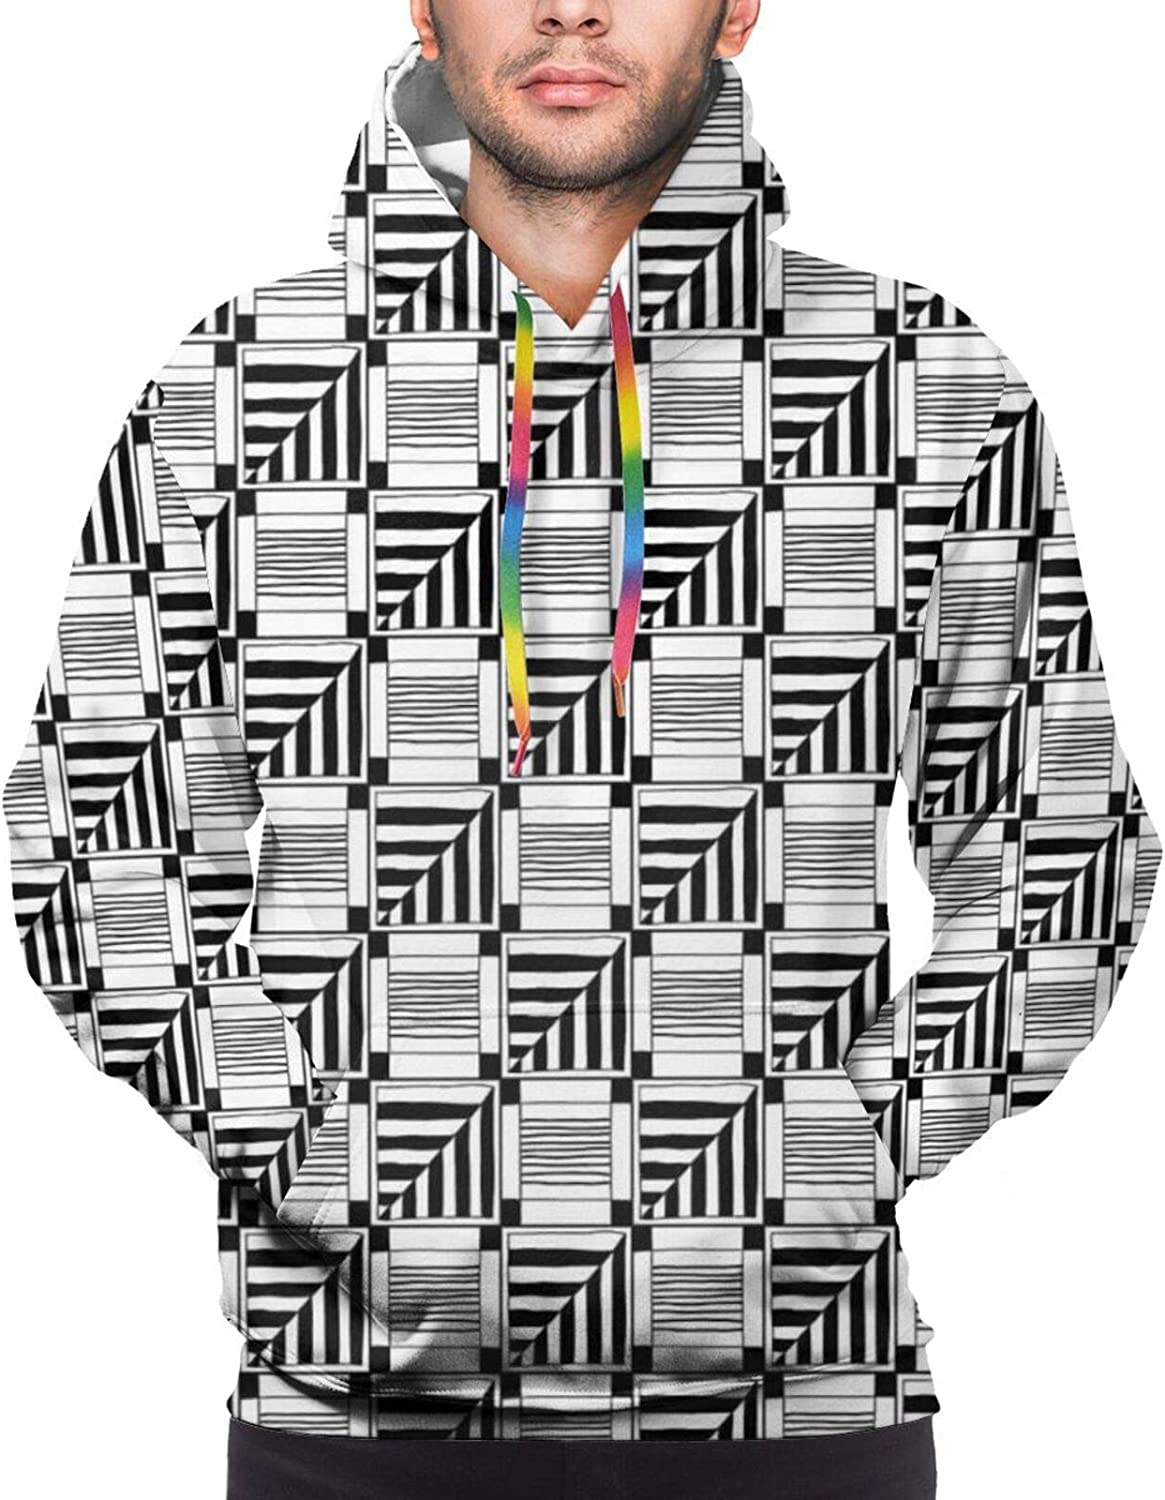 TENJONE Men's Hoodies Sweatshirts,Abstract Composition of Monochrome Geometric Shapes Pattern Grid Squares,Small